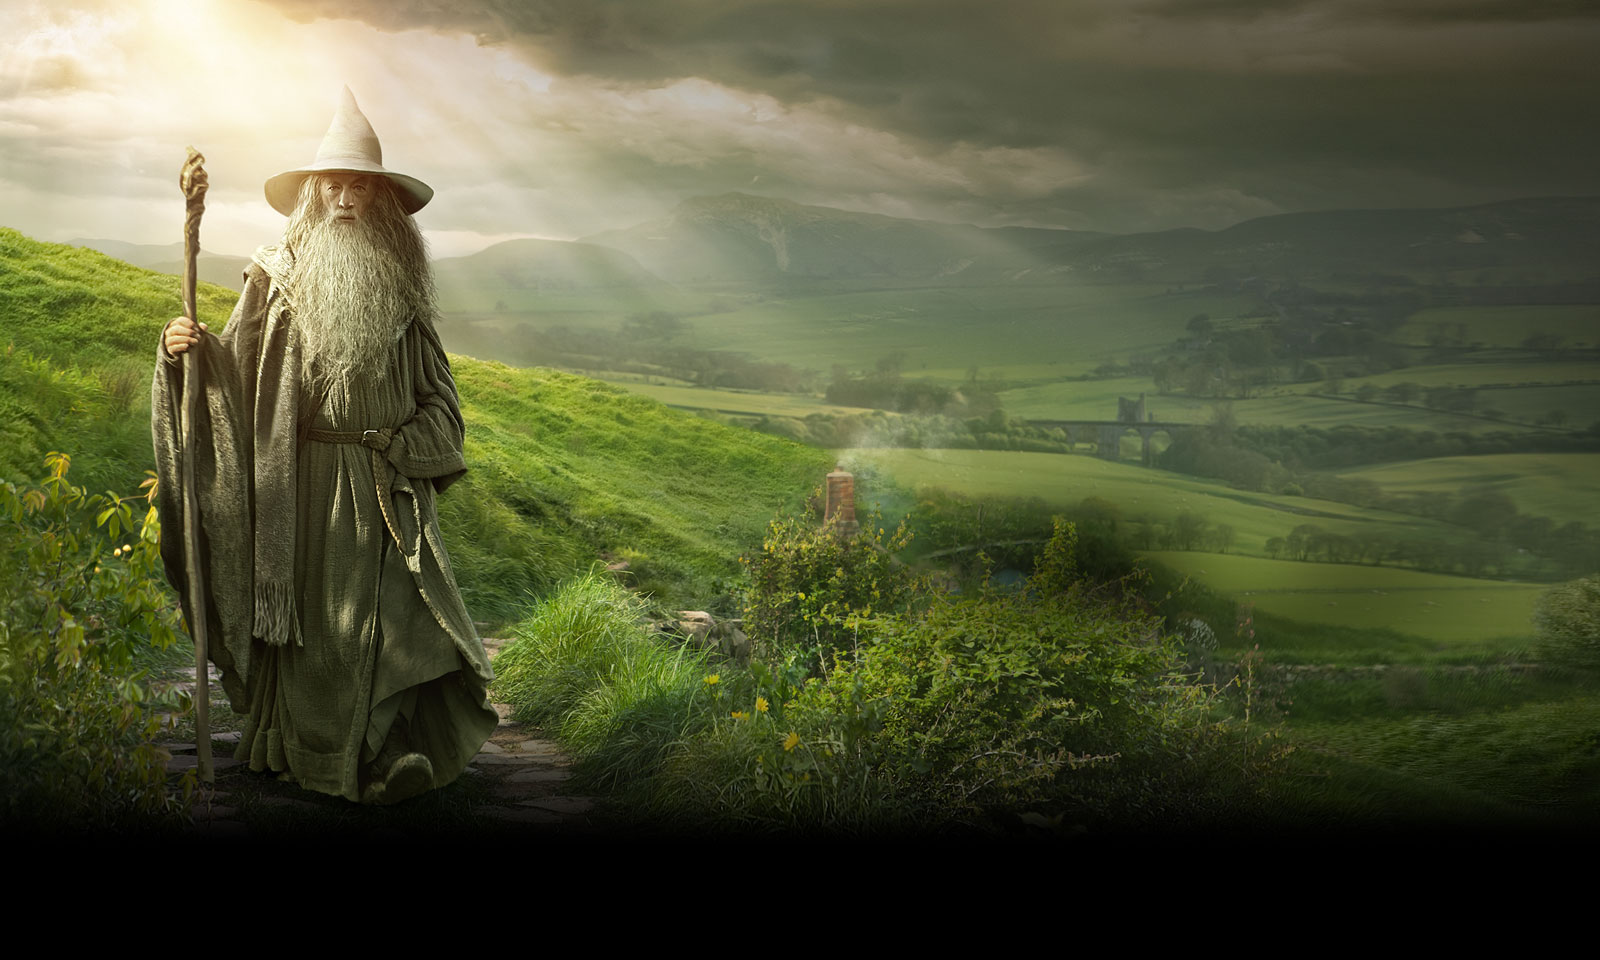 The Hobbit Gandalf Poster Images amp Pictures   Becuo 1600x960